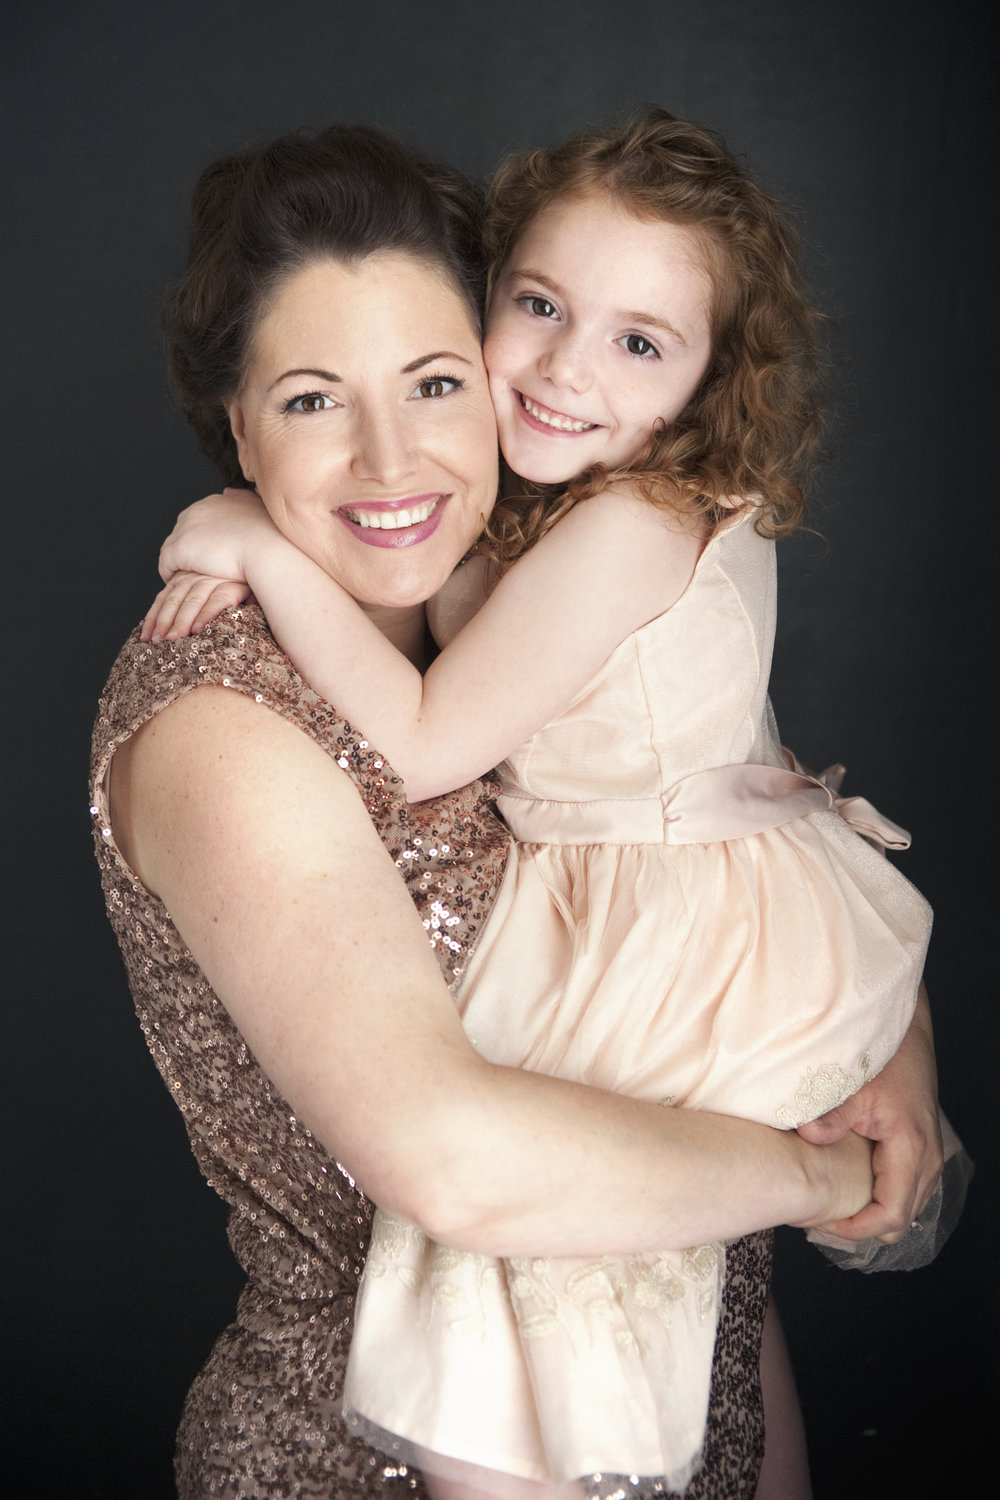 Mother Daughter portraits | Mommy and Me | Mother's Day pictures | mother's day gifts | Christmas Gifts | Birthday Gift Ideas for Women | Blush gowns | Sequins | Winston Salem photographer | North Carolina photographer | #momlife | pictures for mom | picture with mom | Jasper & Fern | www.jasperndfern.com